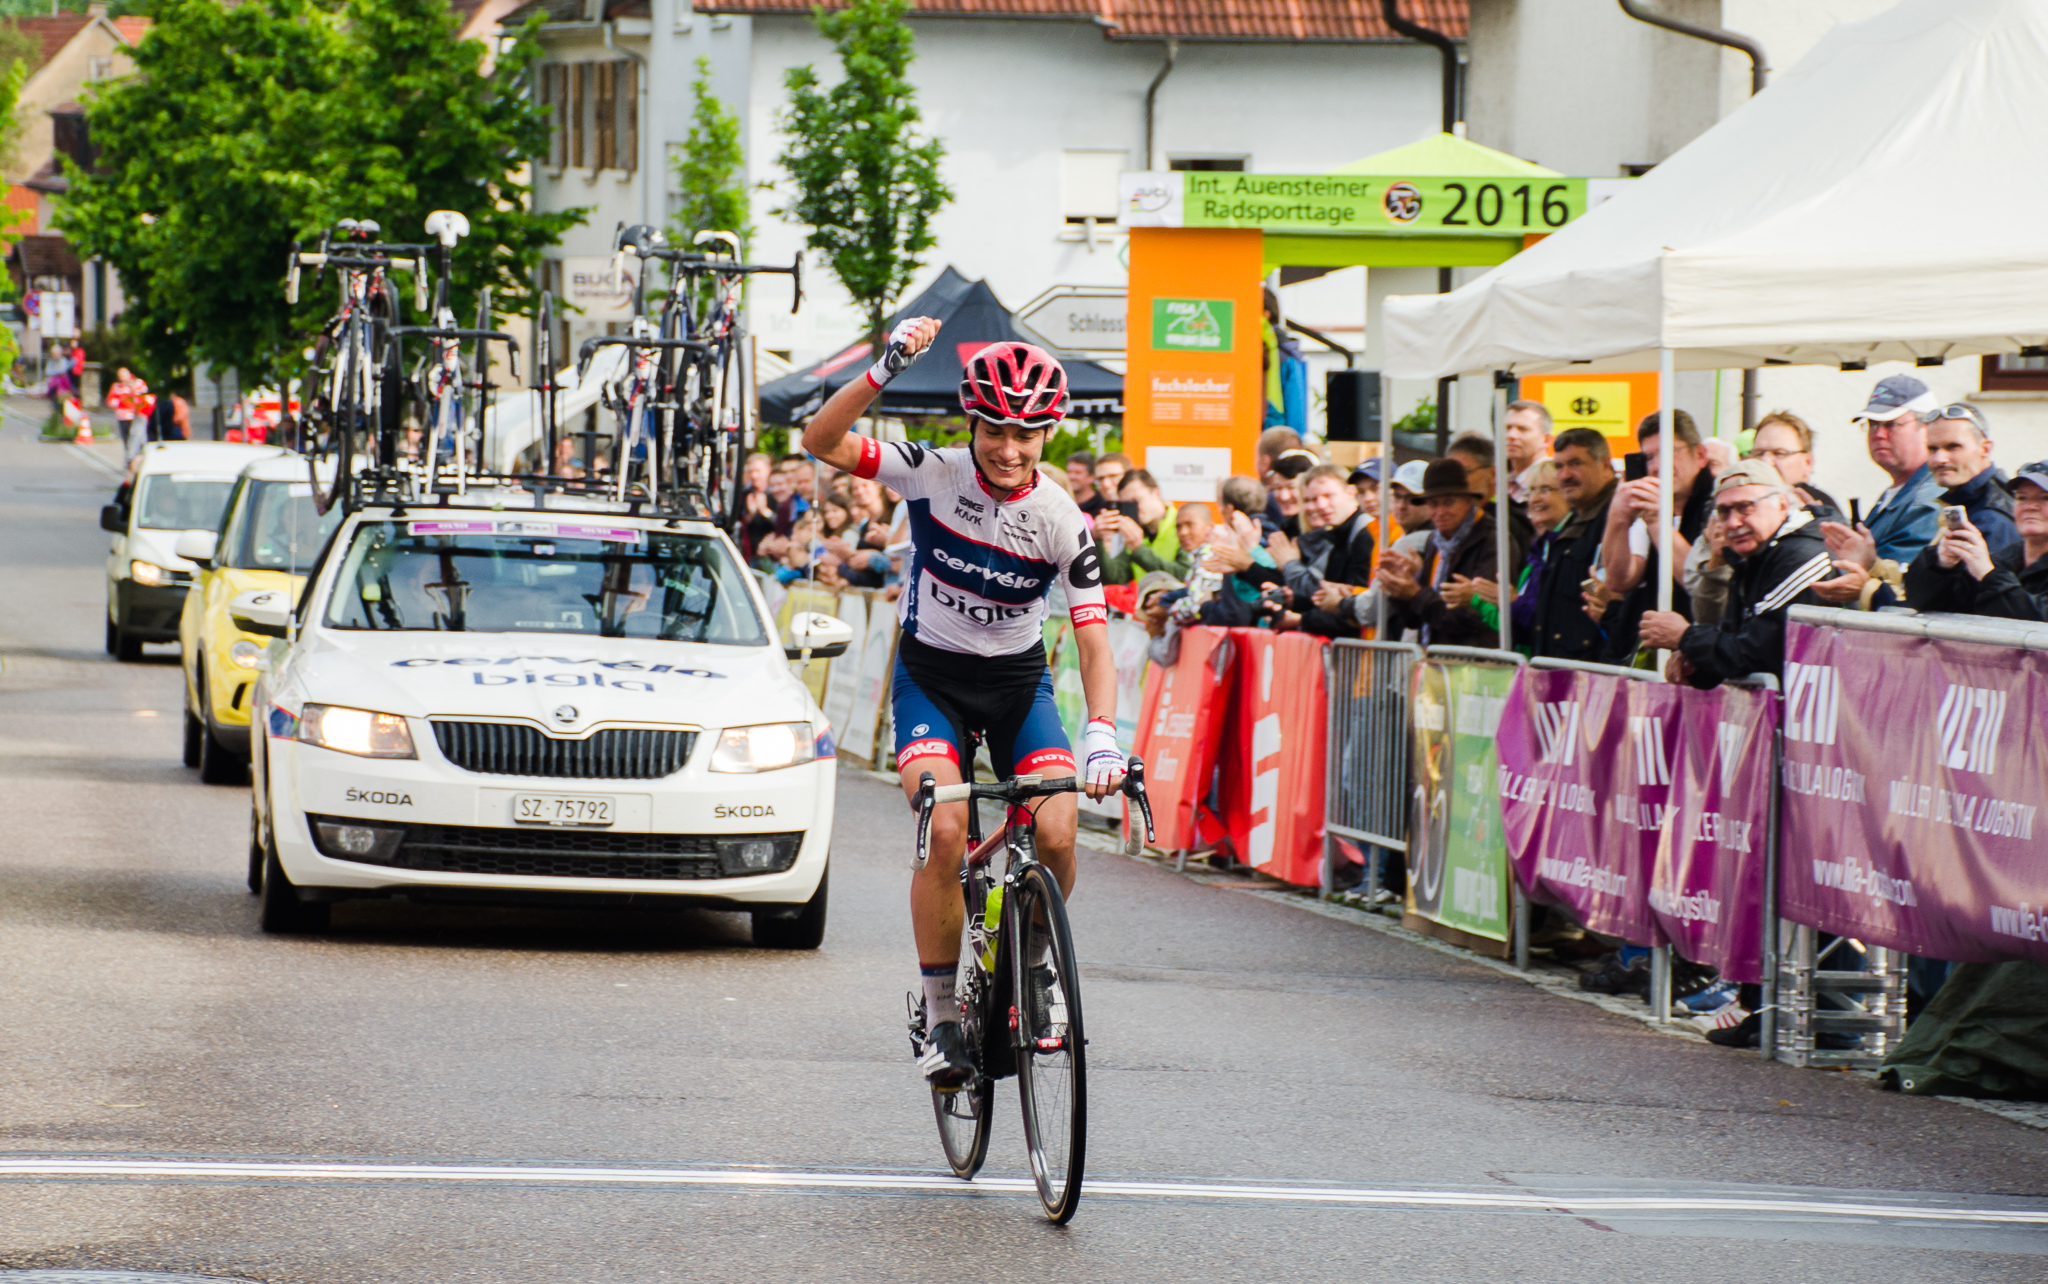 Ashleigh Moolman-Pasio (Bigla Pro Cycling Team)  ended her spells of unfortunate setbacks when she won the three-stage Auensteiner Radsporttage in Germany on 11 and 12 June Photo Credit: Stuart Pickering / Cycling Direct